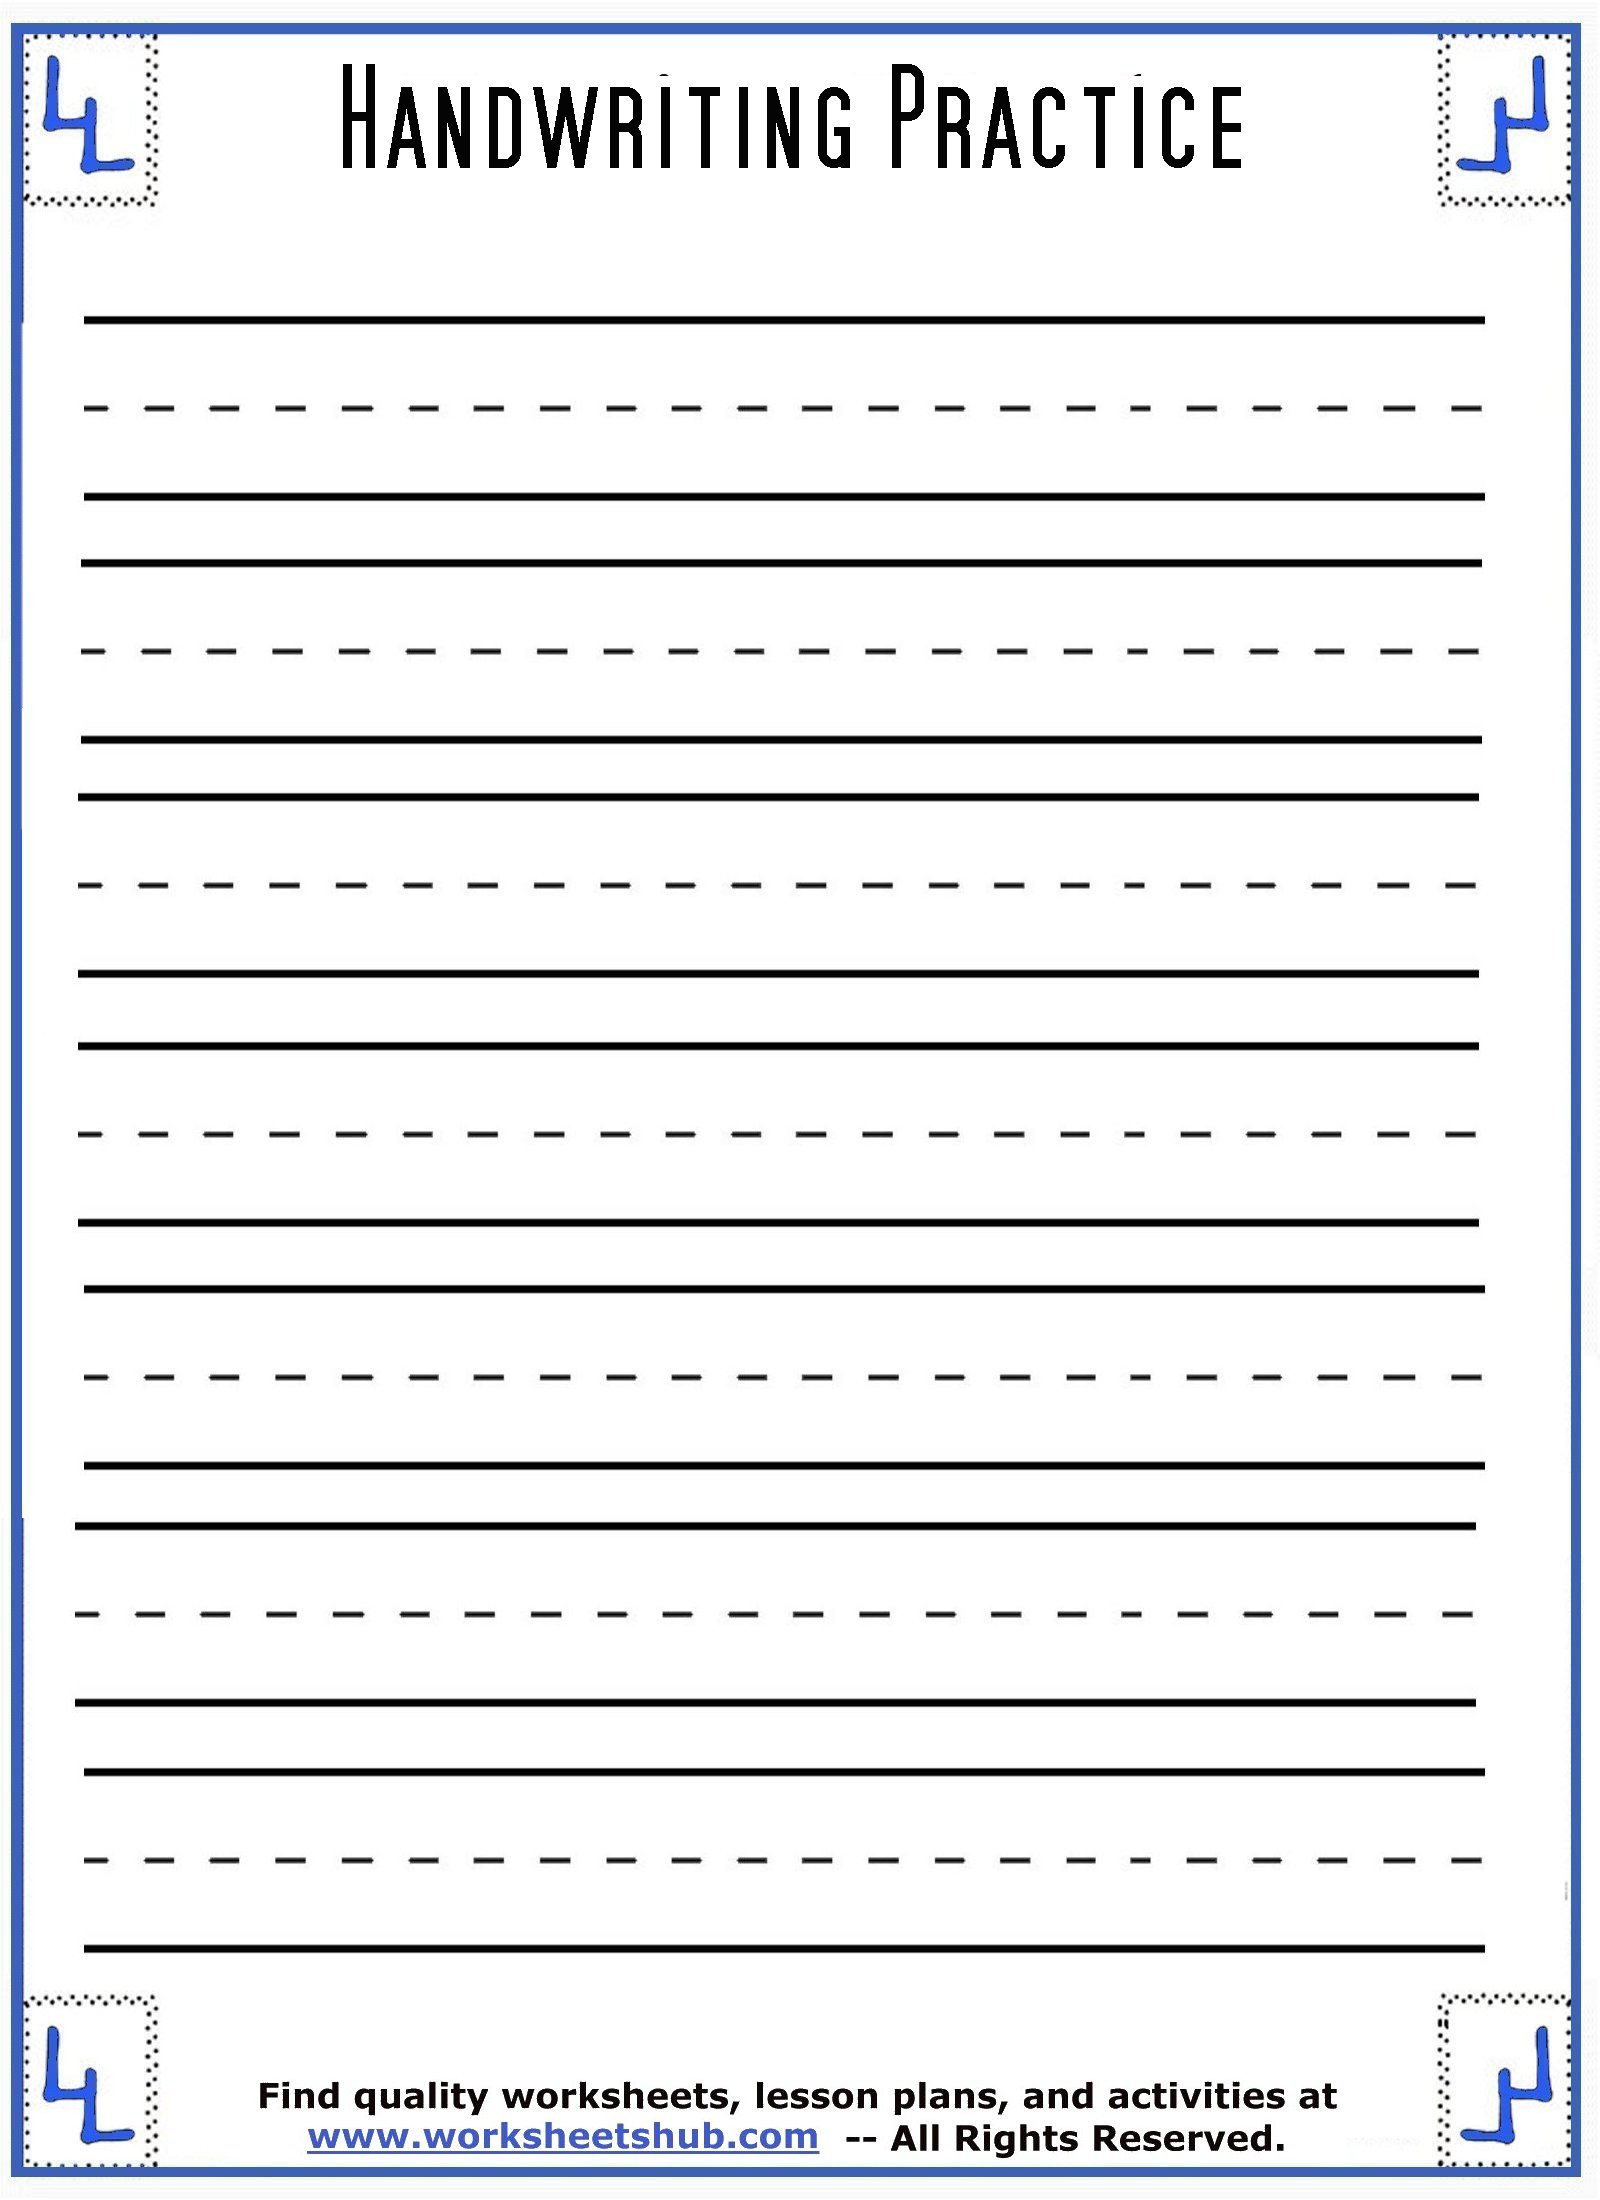 handwriting sheets printable 3